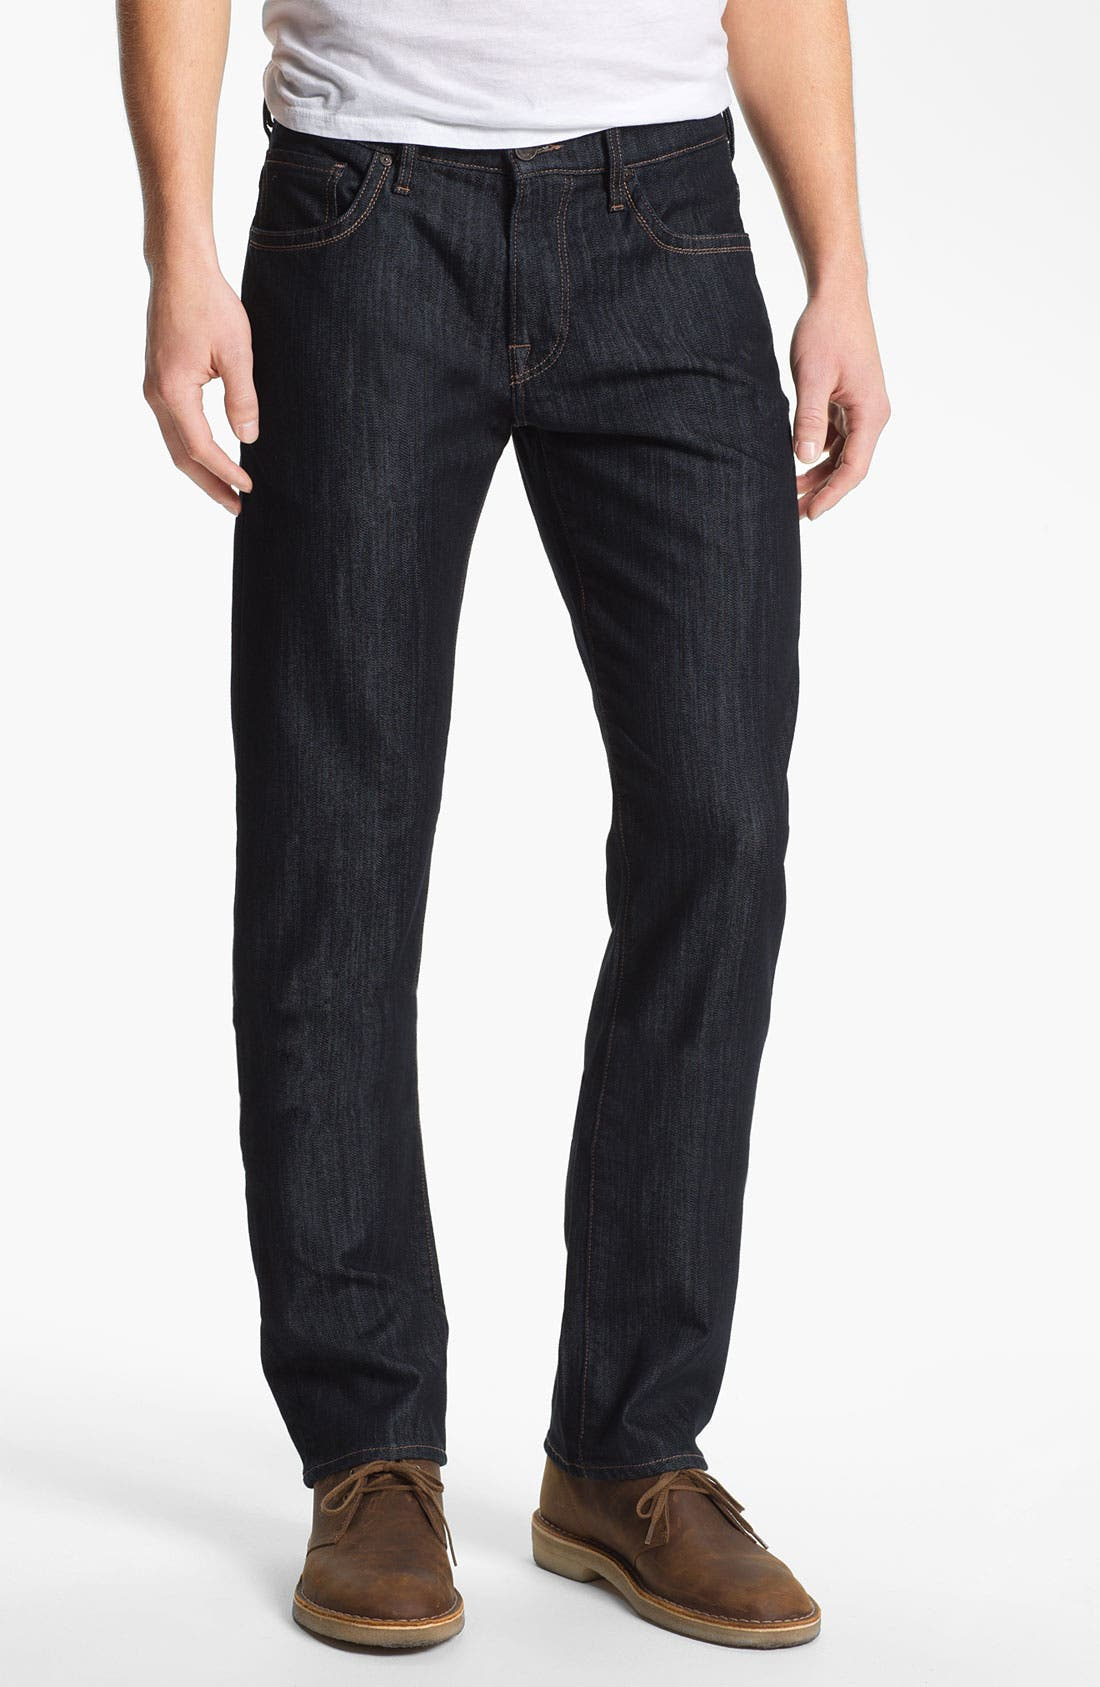 34 HERITAGE 'Courage' Straight Leg Jeans, Main, color, 425